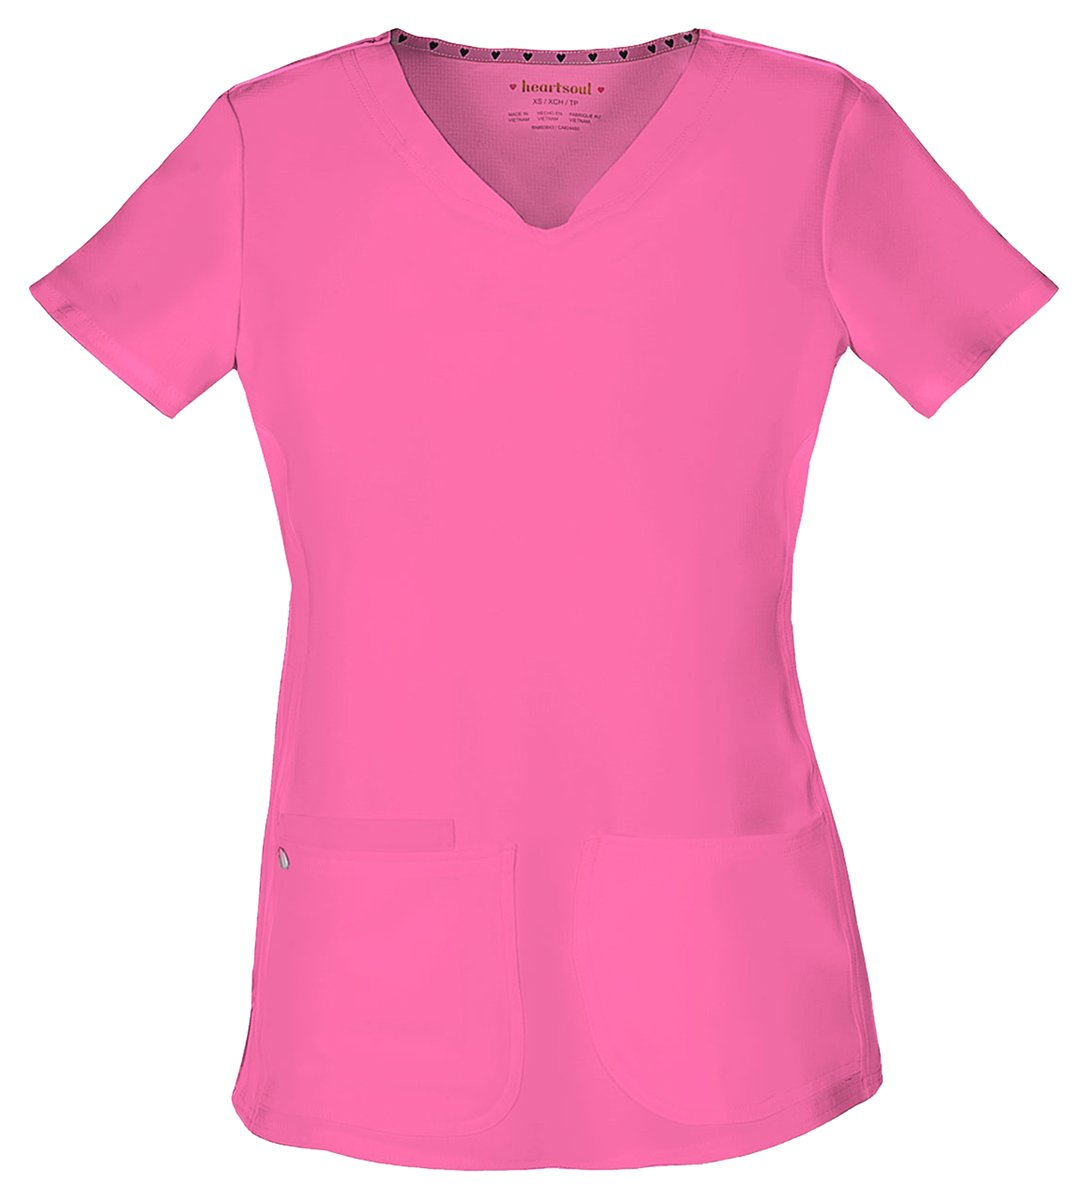 HeartSoul Women's Pitter-Pat Shaped V-Neck Top_Pink Party_XXX-Large,20710